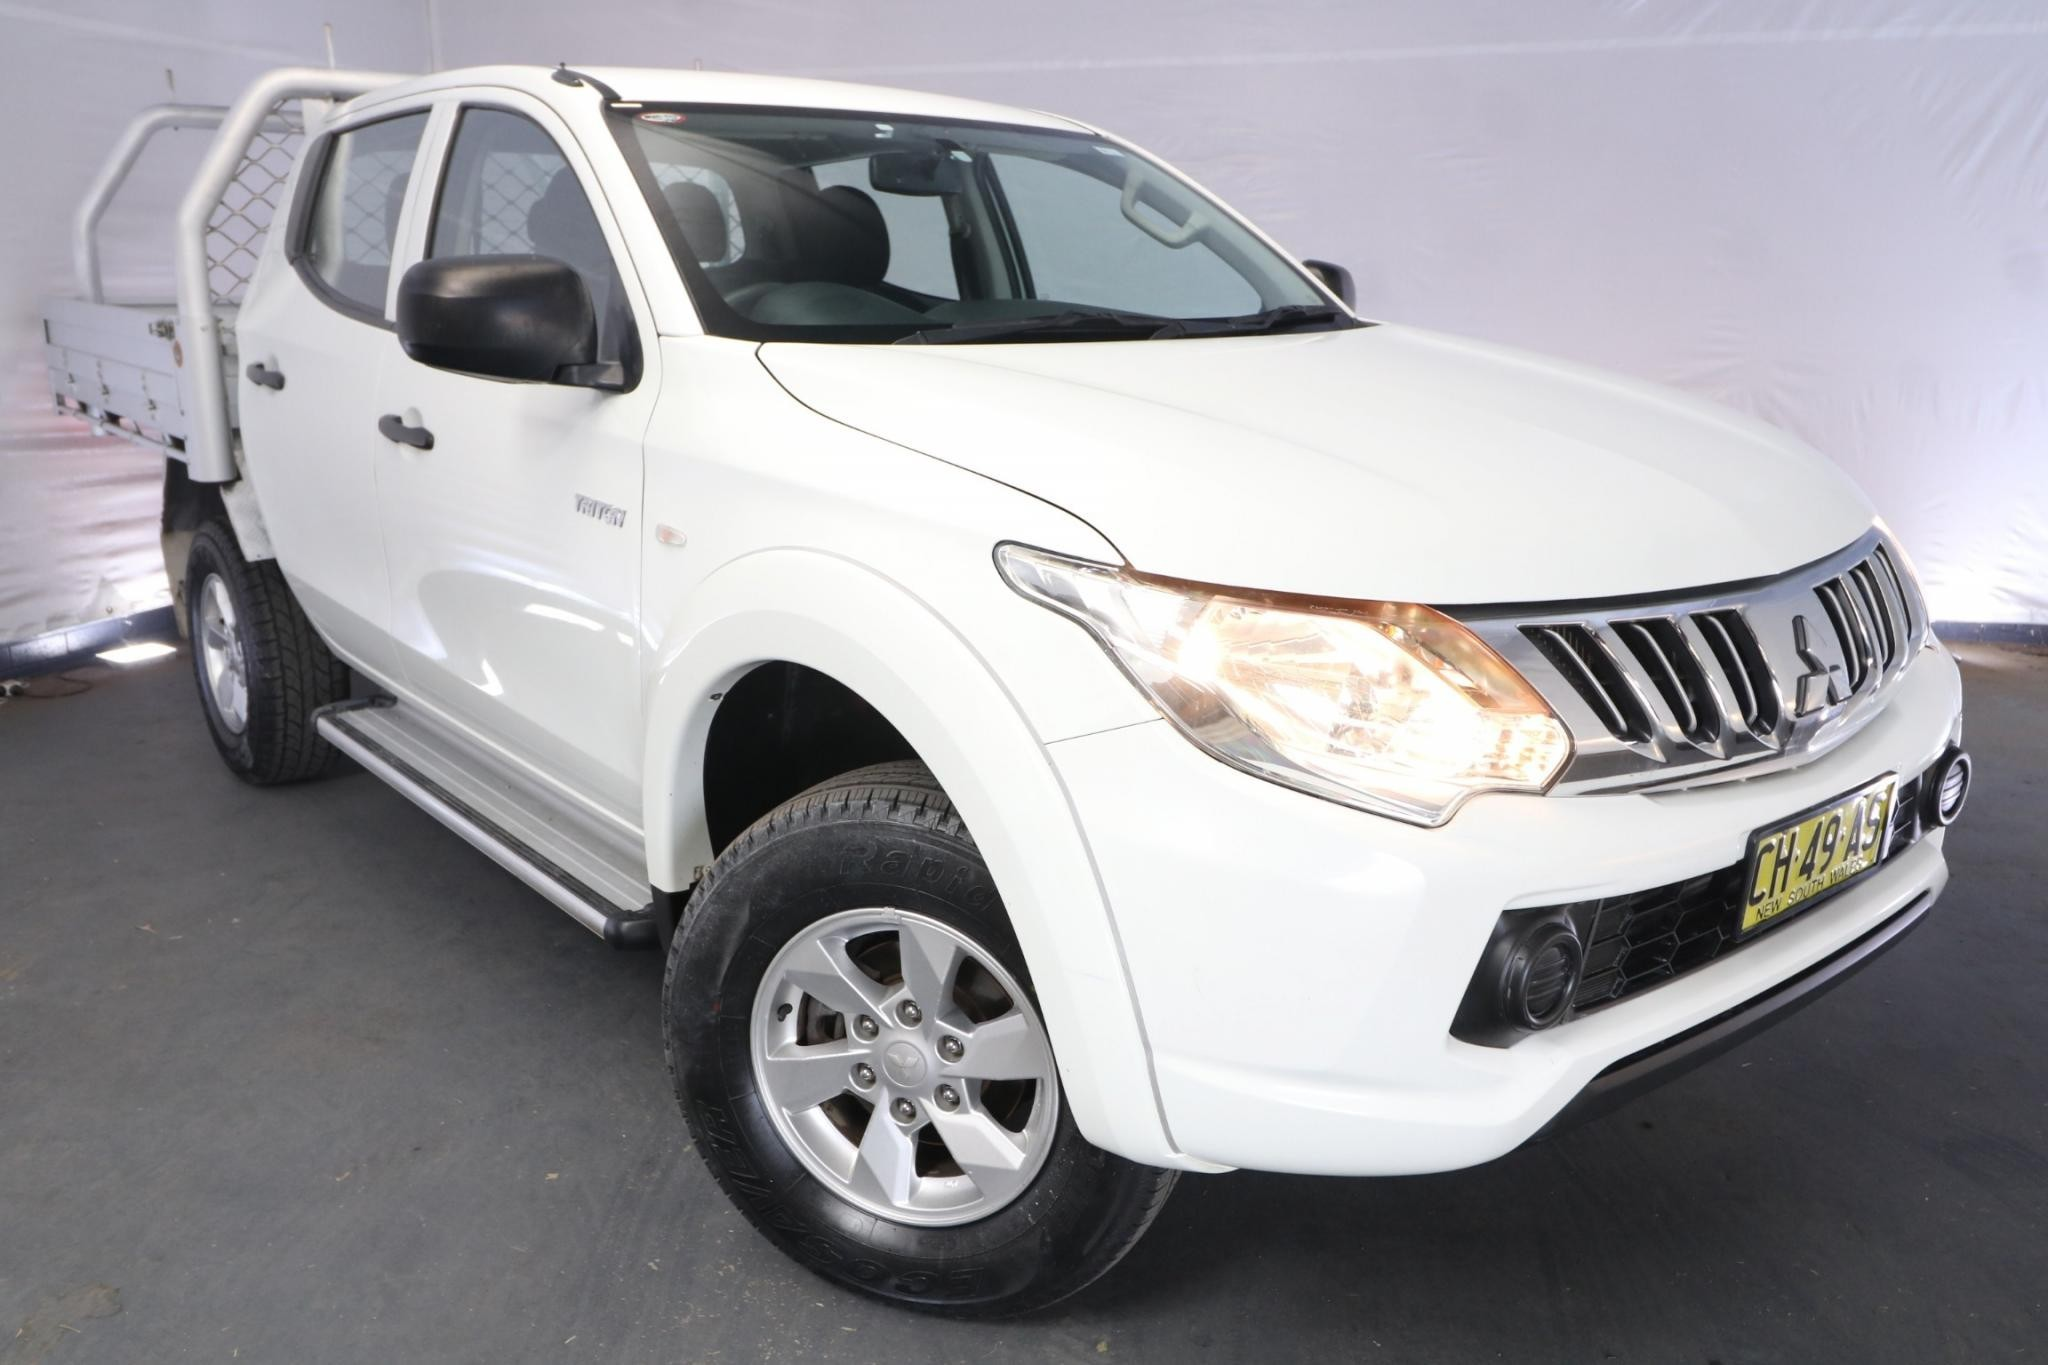 2016 Mitsubishi Triton GLX MQ MY16 / 5 Speed Automatic / Dual Cab Chassis / 2.4L / 4 Cylinder TURBO / Diesel / 4x4 / 4 door / Model Year '16 September release TN516A